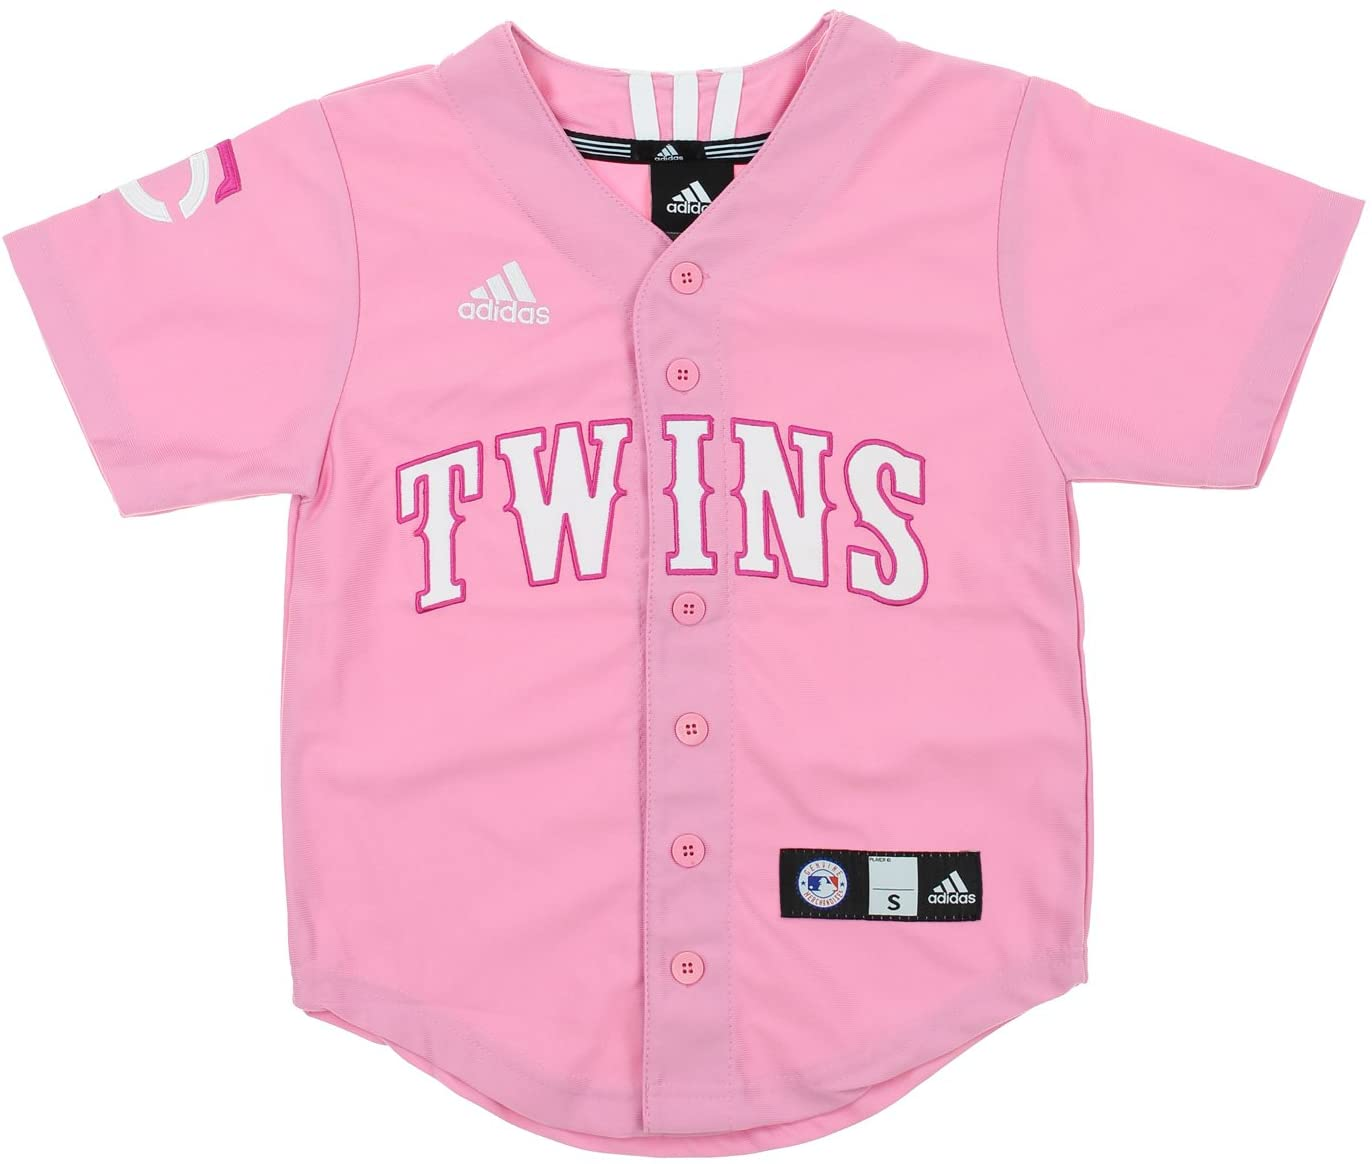 adidas MLB Youth (7-16) Girl's Minnesota Twins Applique Jersey, Pink